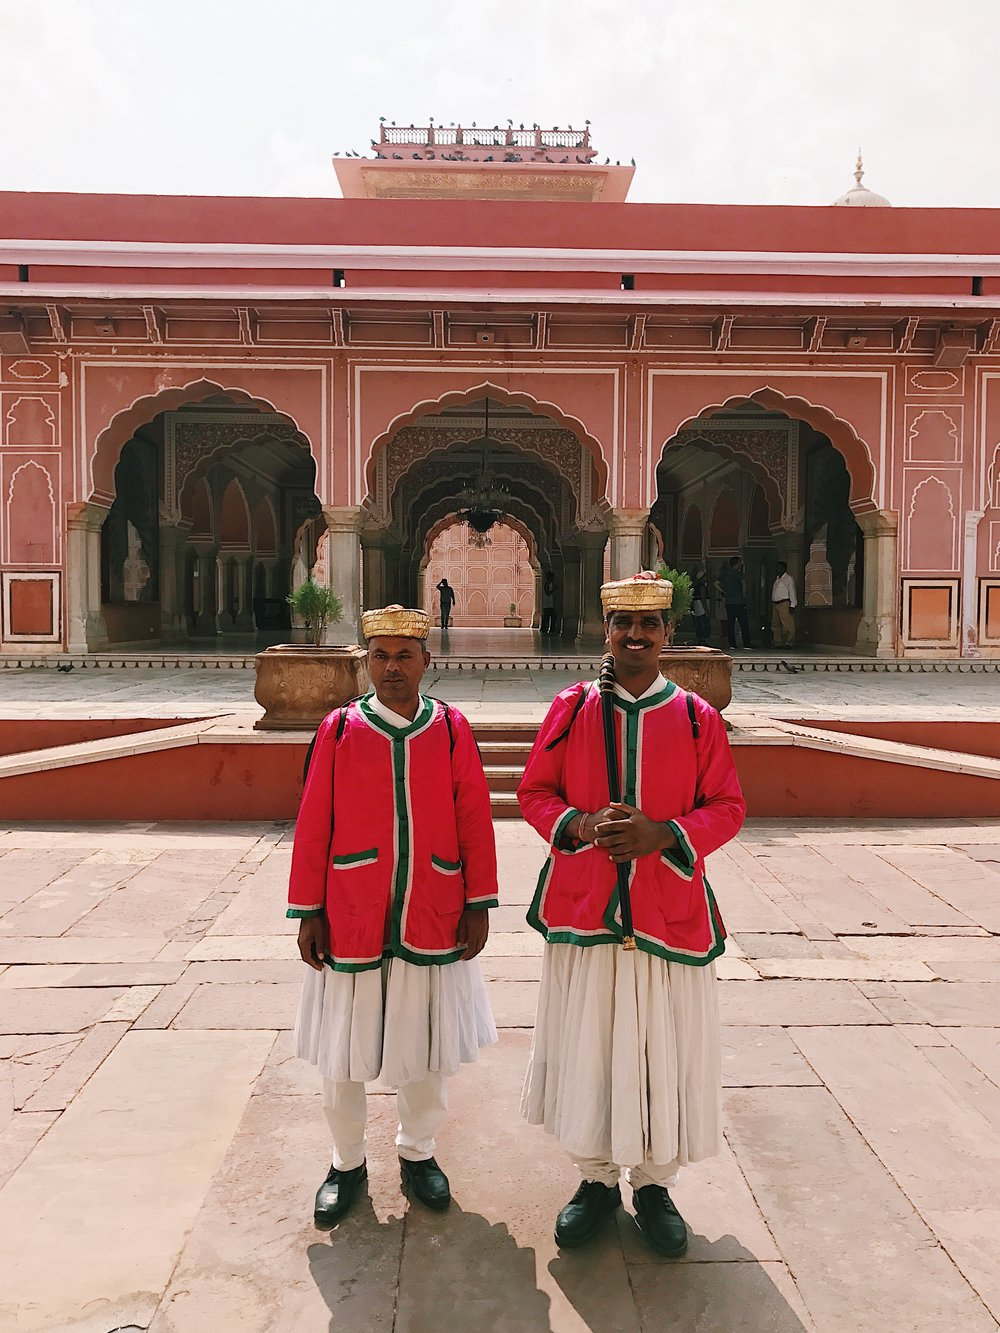 Gaurds at Jaipur's City Palace